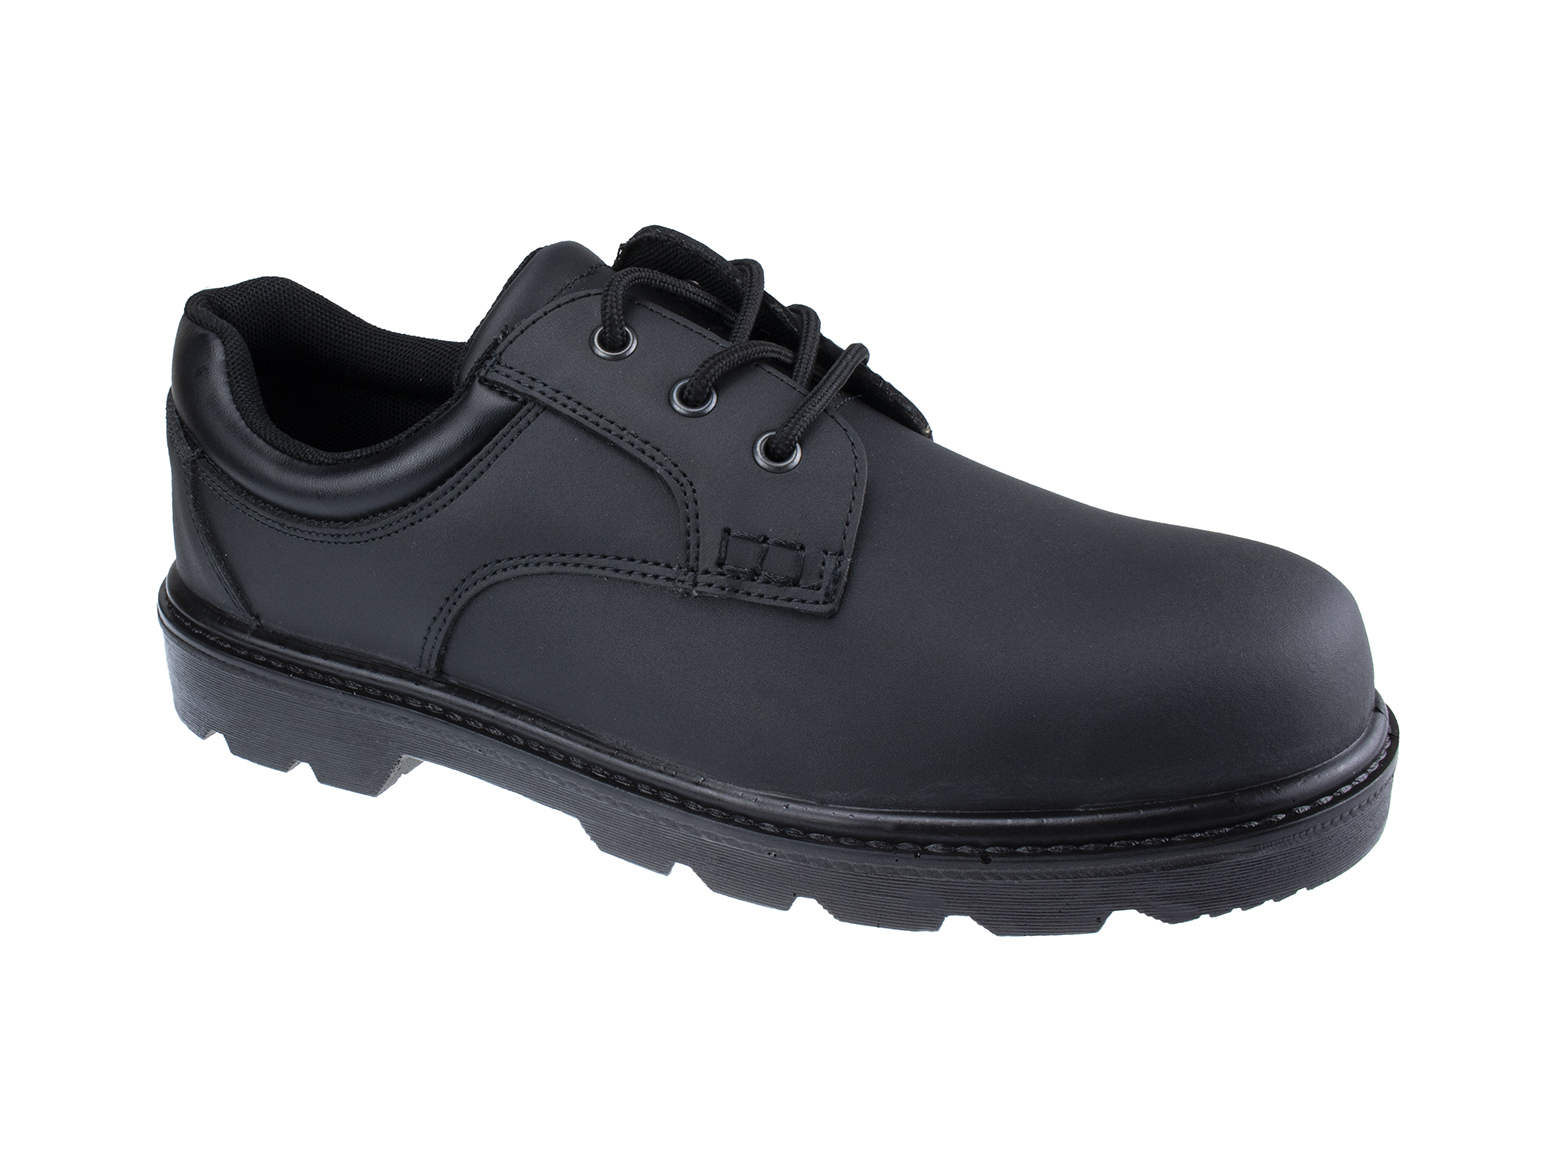 Oxford Executive Leather Safety Shoe w/ Padded collar for Ankle Support